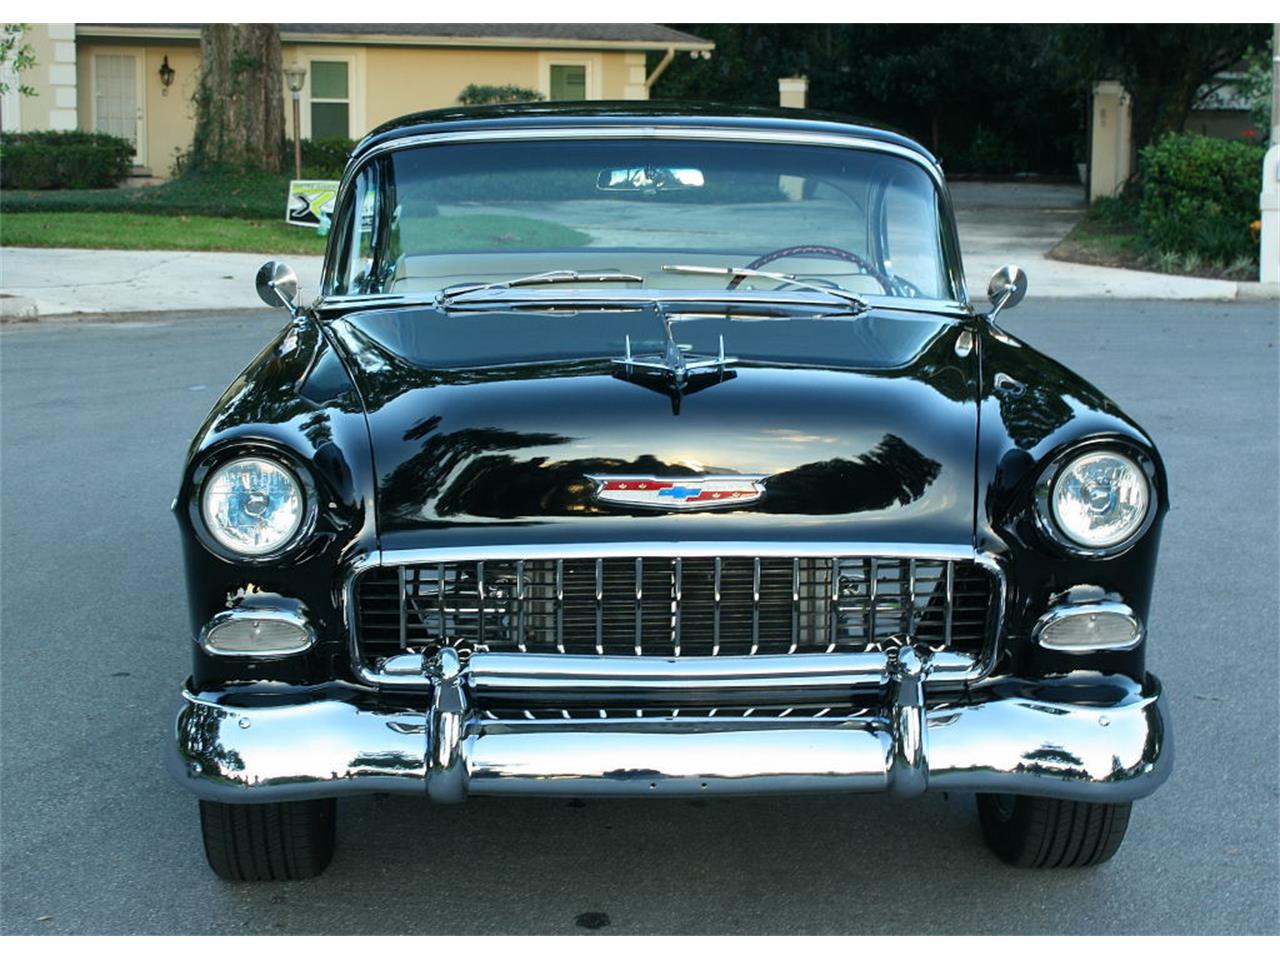 Large Picture of 1955 Chevrolet Bel Air located in Lakeland Florida - $59,500.00 - MCLQ